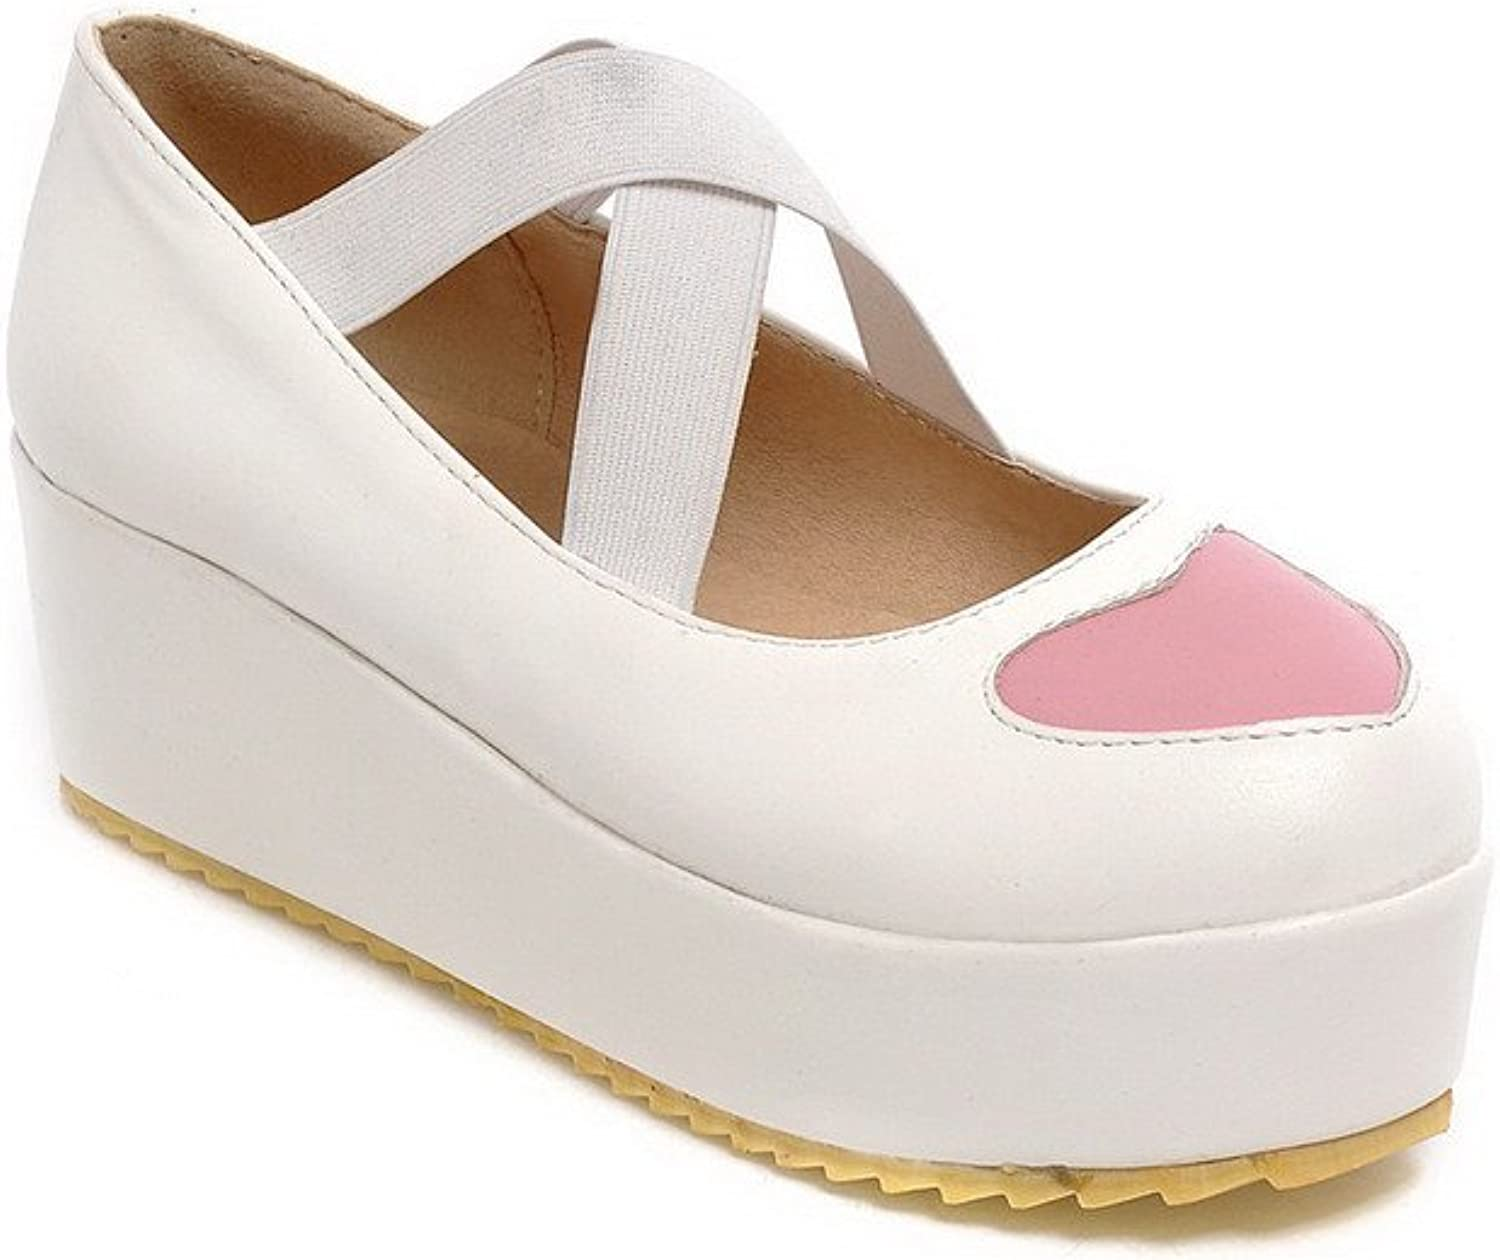 WeenFashion Women's Kitten-Heels Soft Material Elastic Round Closed Toe Pumps-shoes